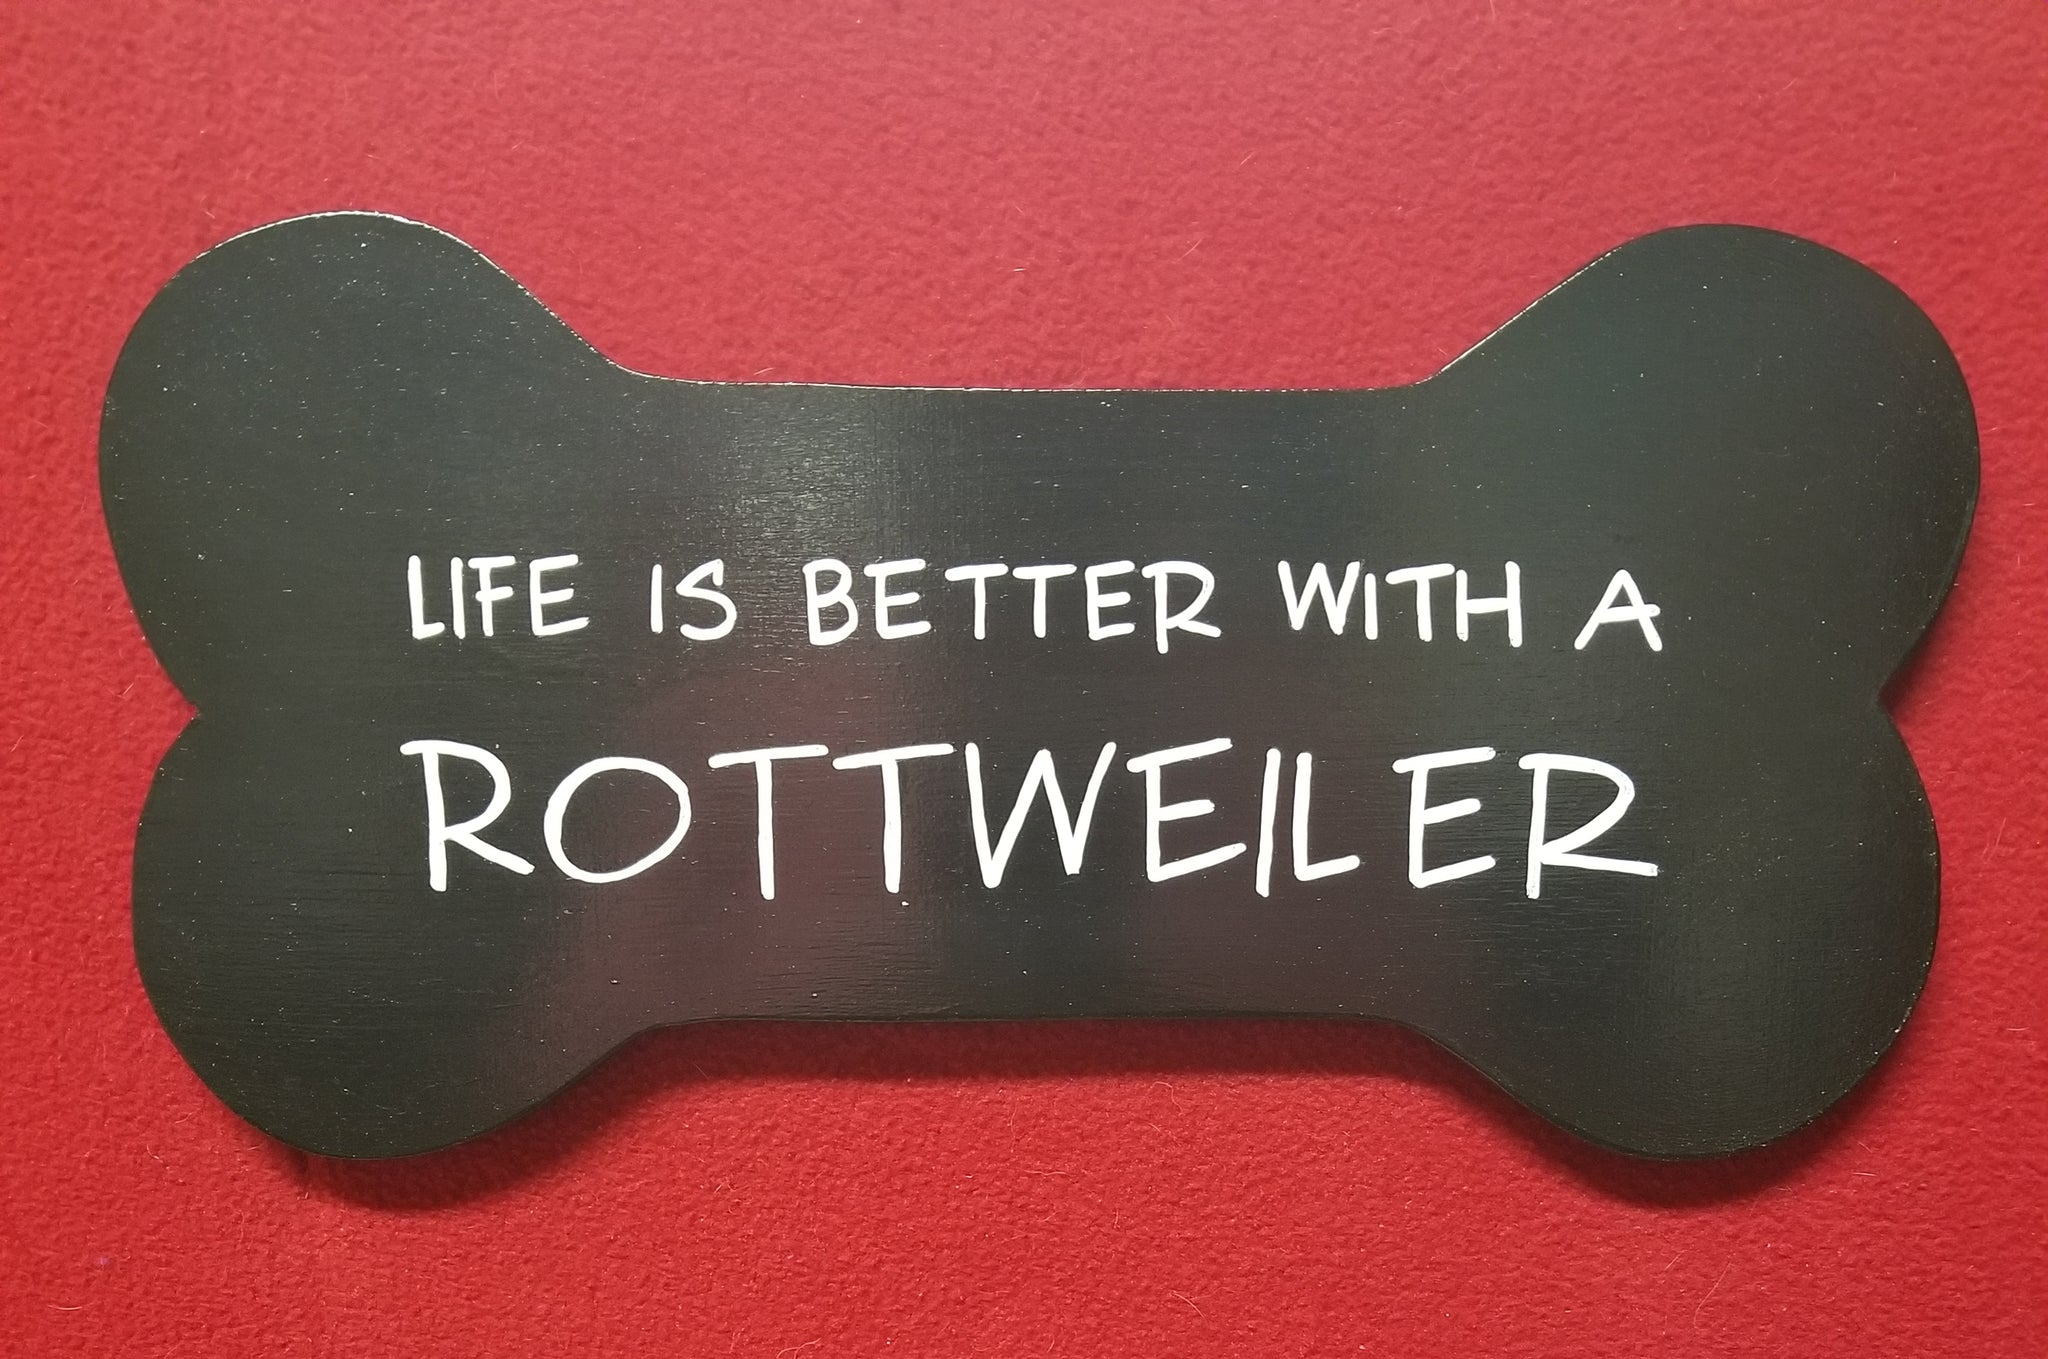 Life is better with a Rottweiler